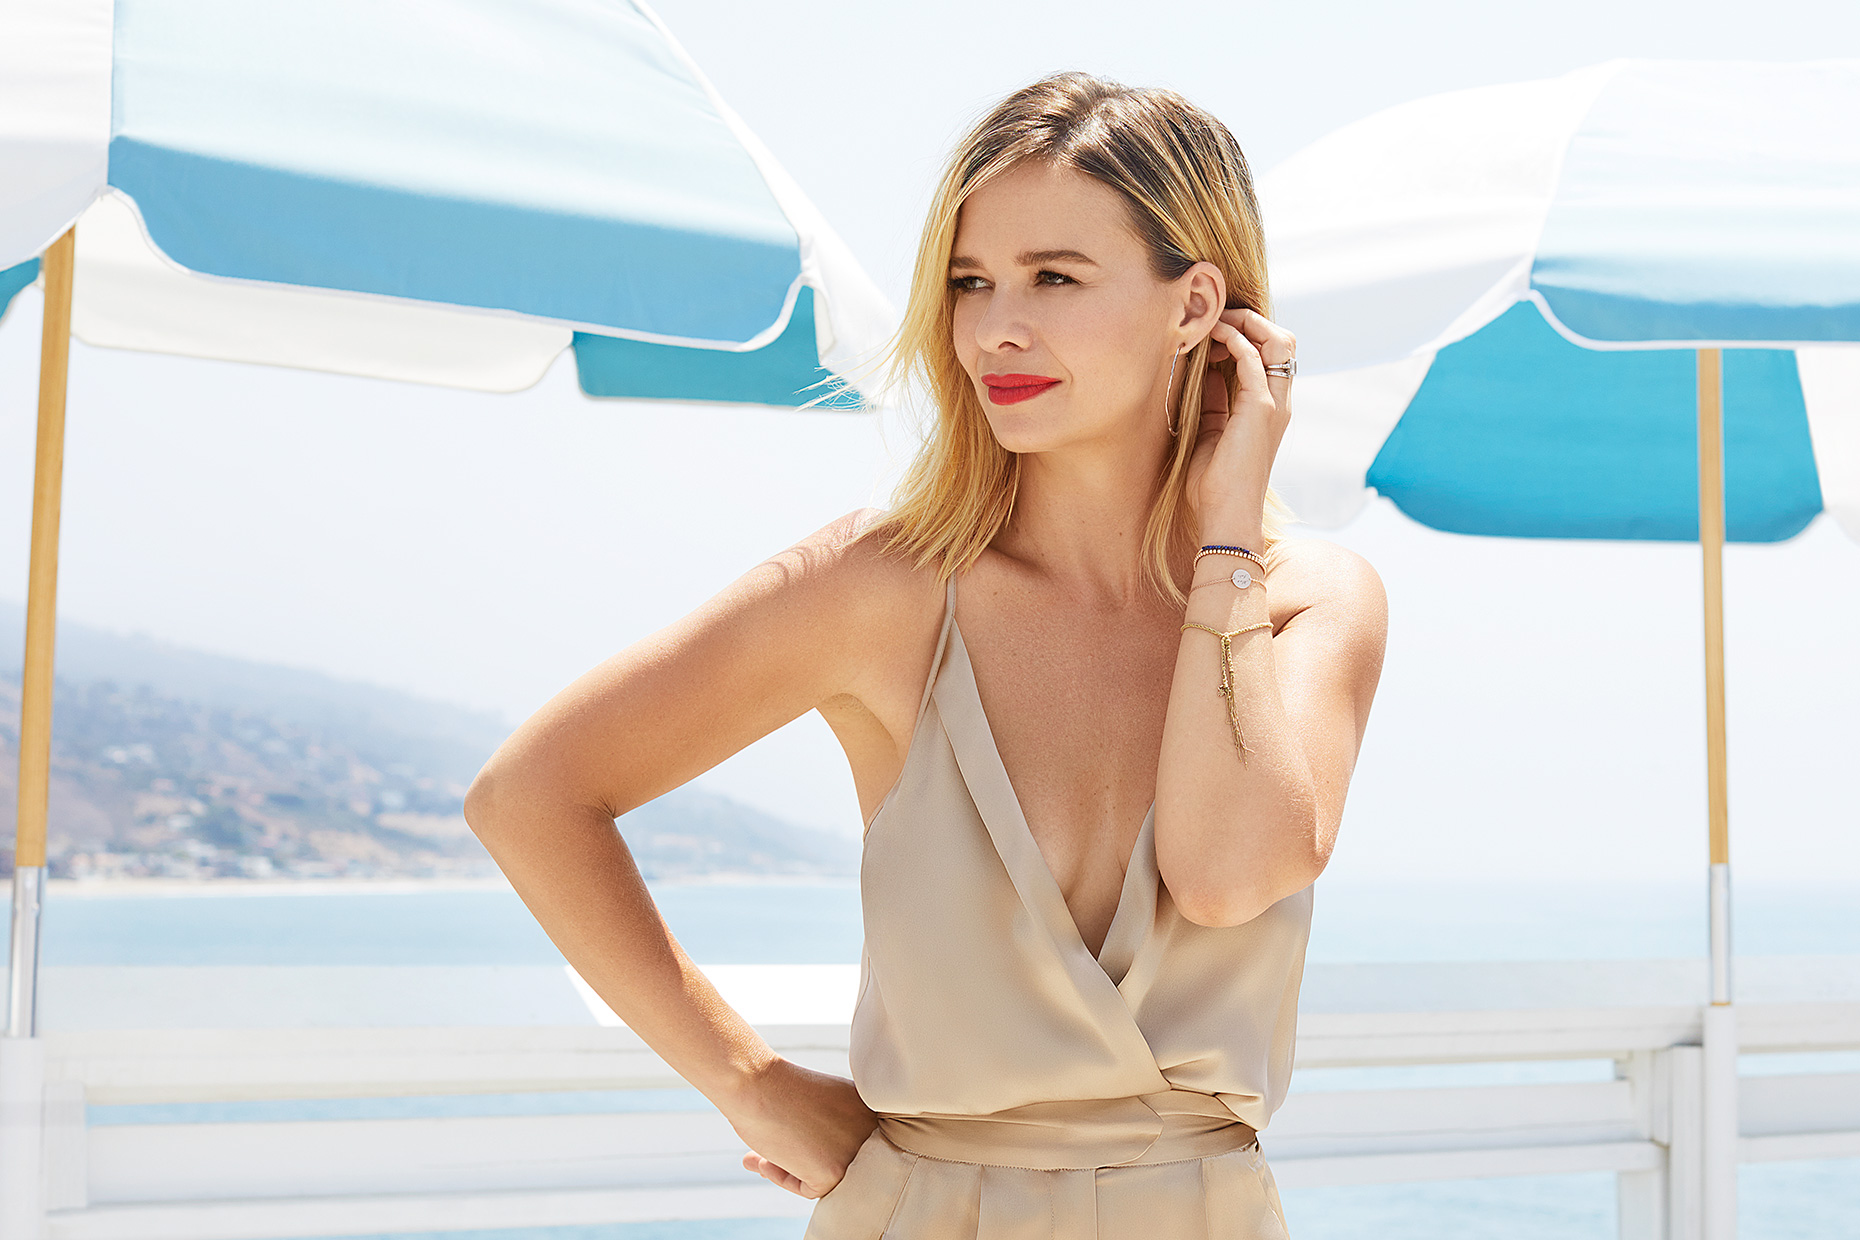 Marissa Hermer Modern Luxury OC - Kim Genevieve Los Angeles Portrait Photographer